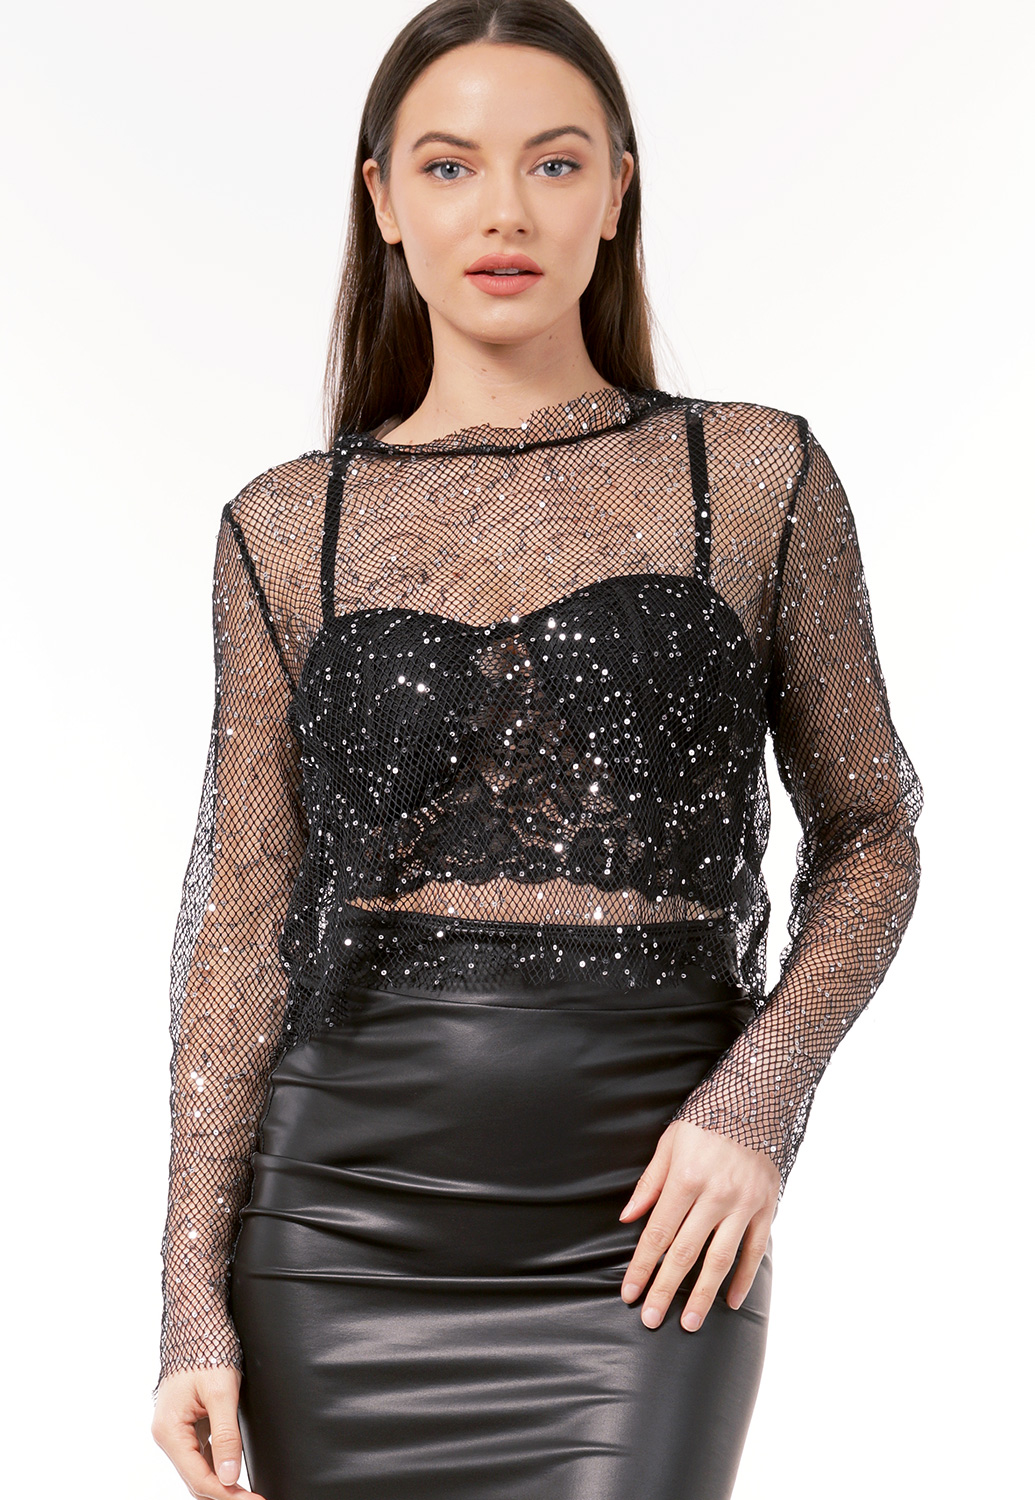 Netted Sequin Embellished Top